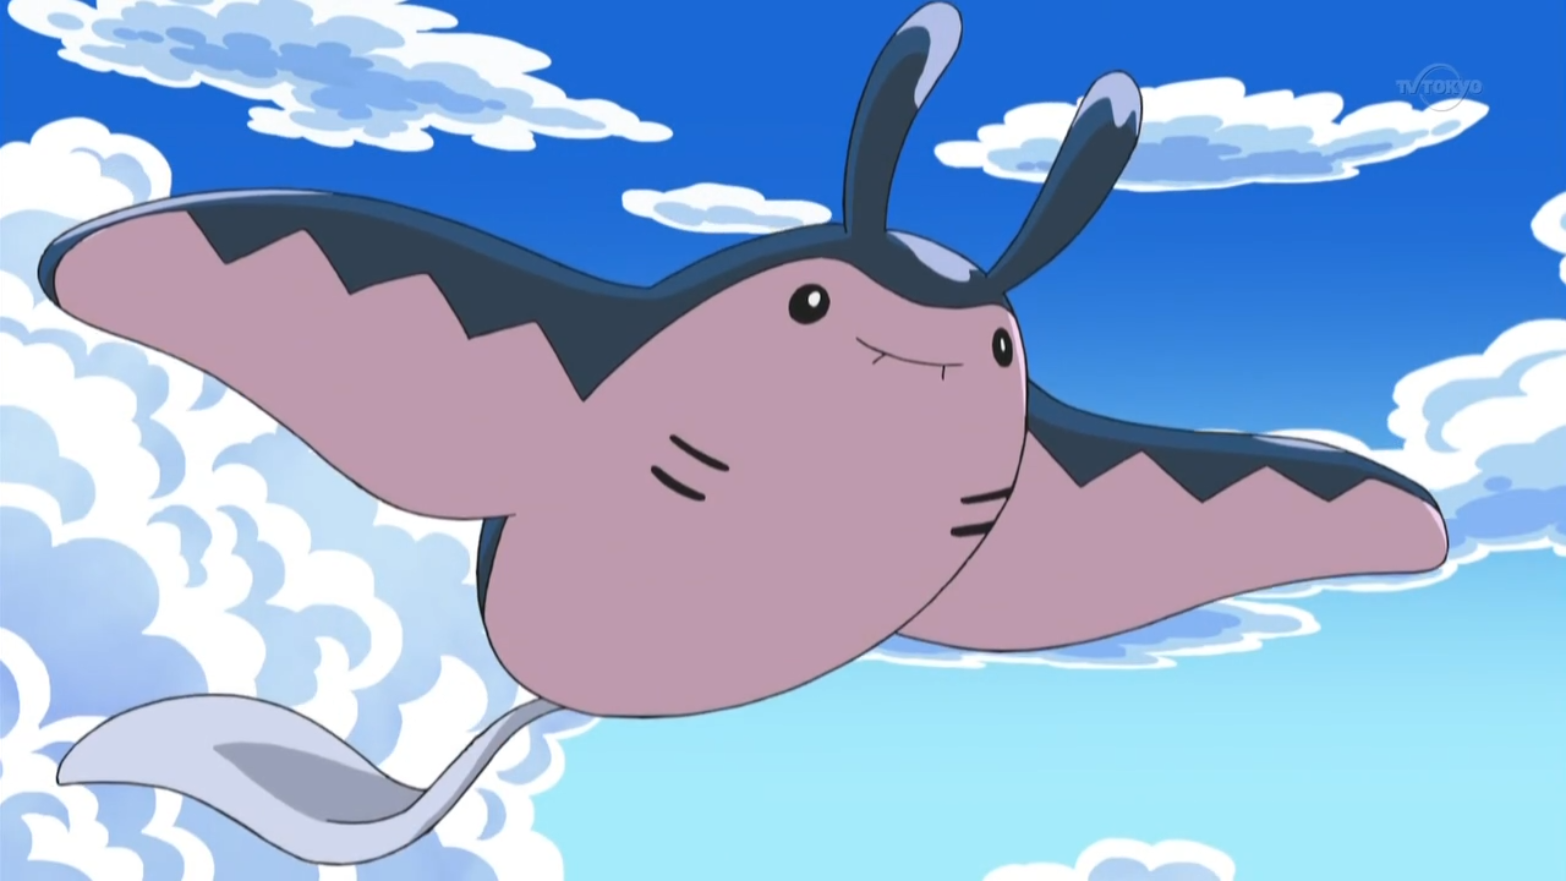 Marlon sent Mantine to battle Cameron's Ferrothorn and managed to win. However, Cameron sent his ace, Samurott and defeated Mantine with Razor Shell.